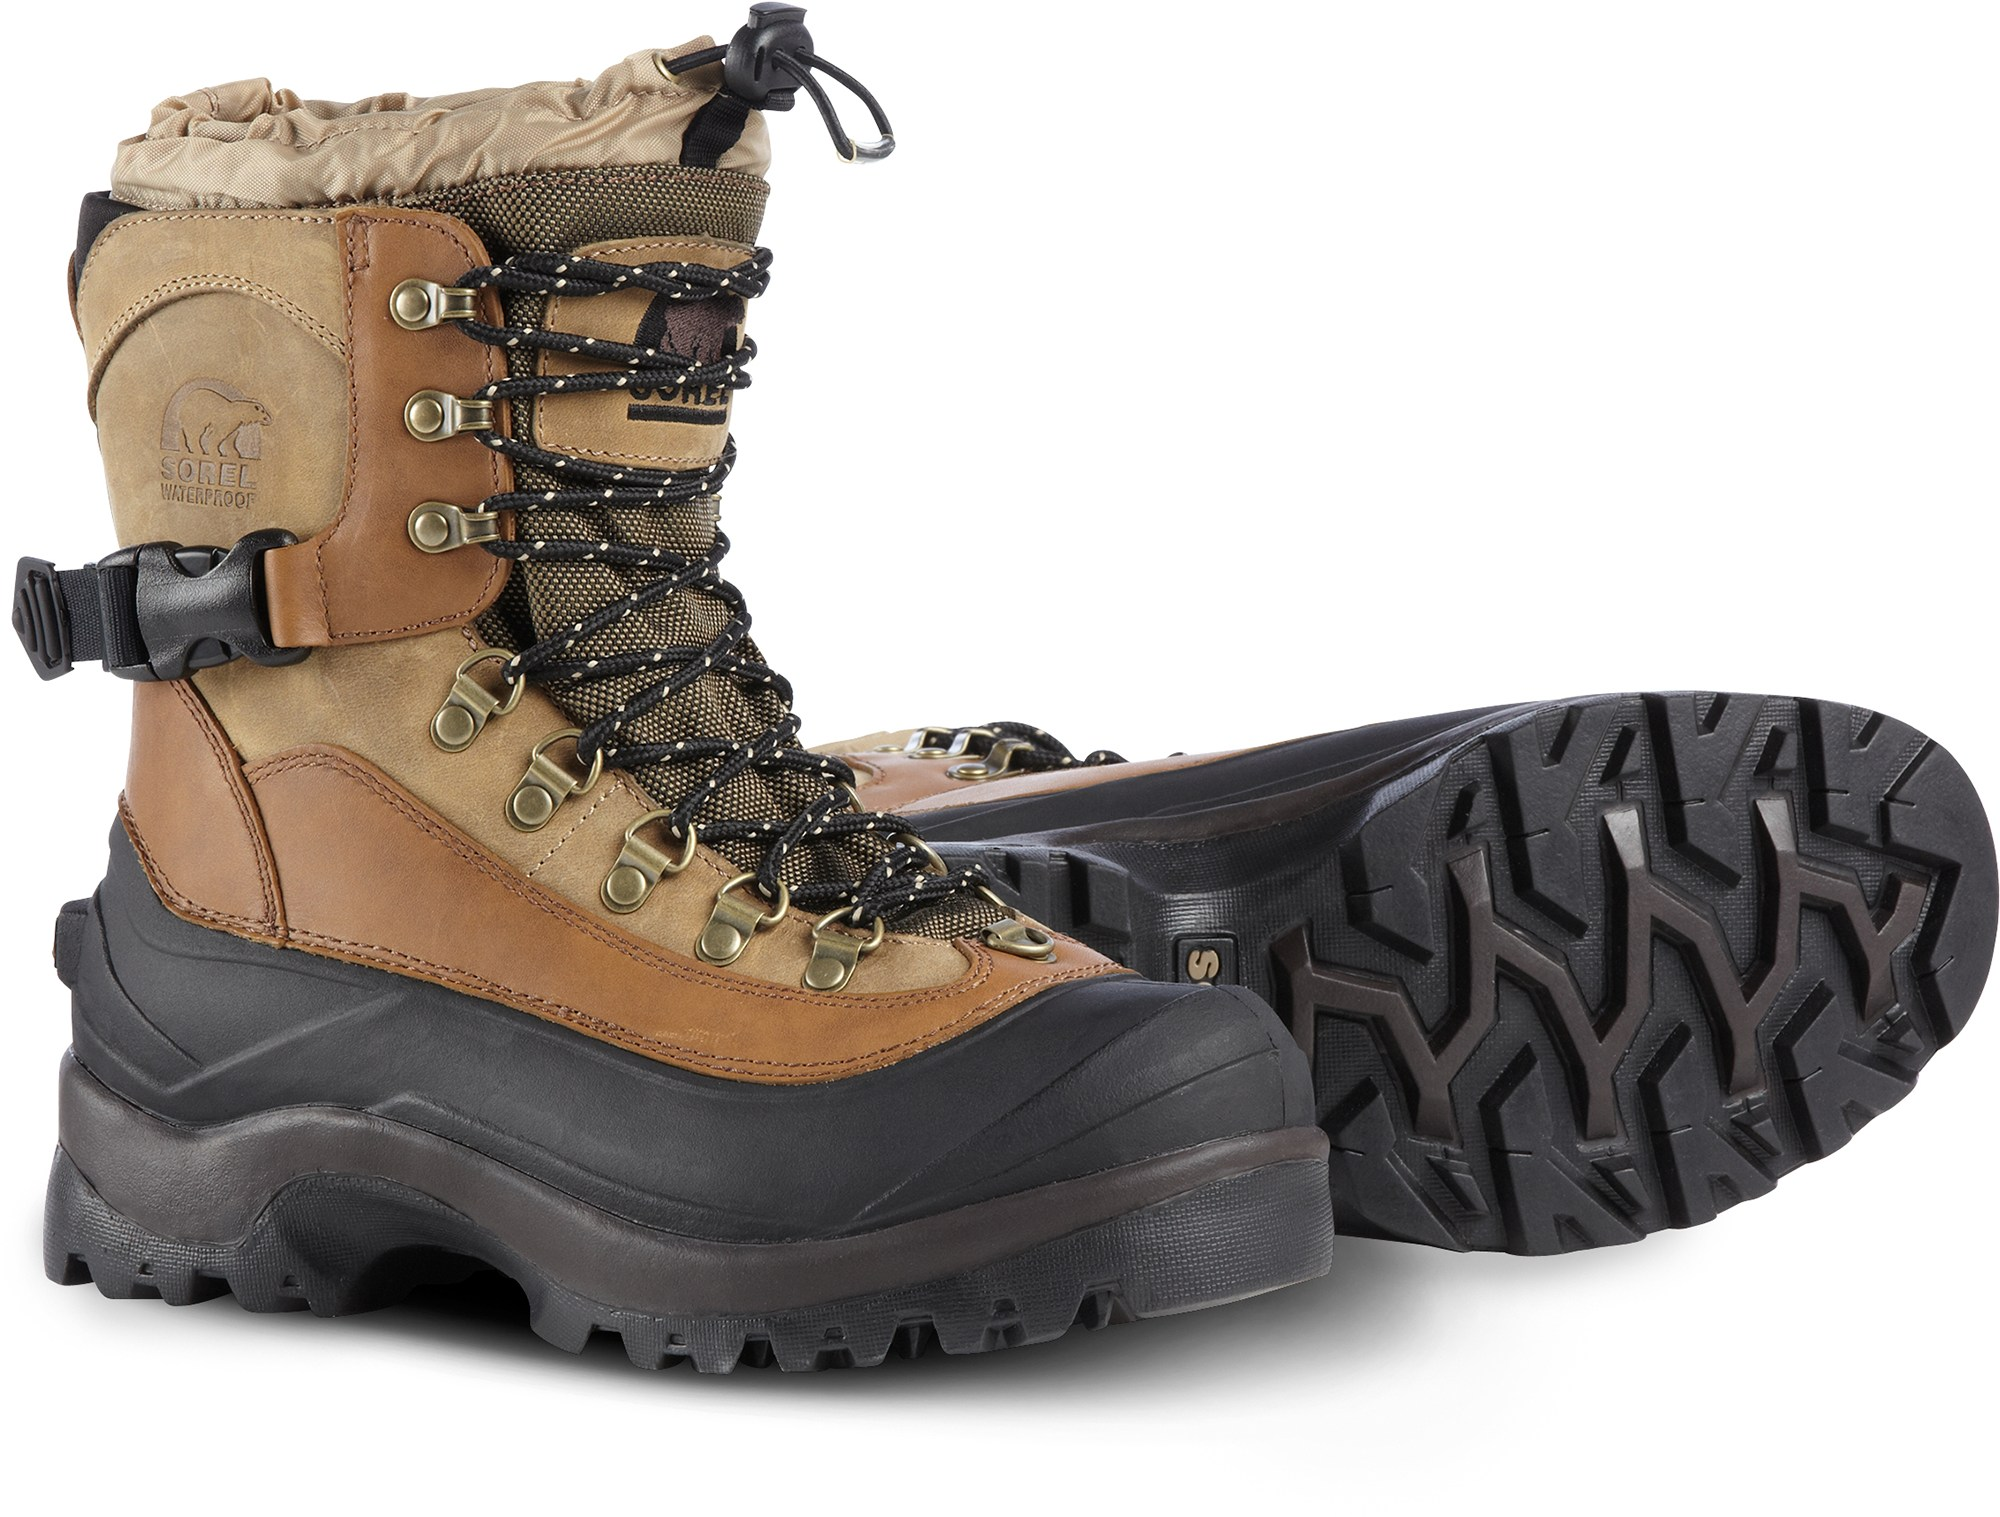 Most Stylish Mens Snow Boots | Santa Barbara Institute for